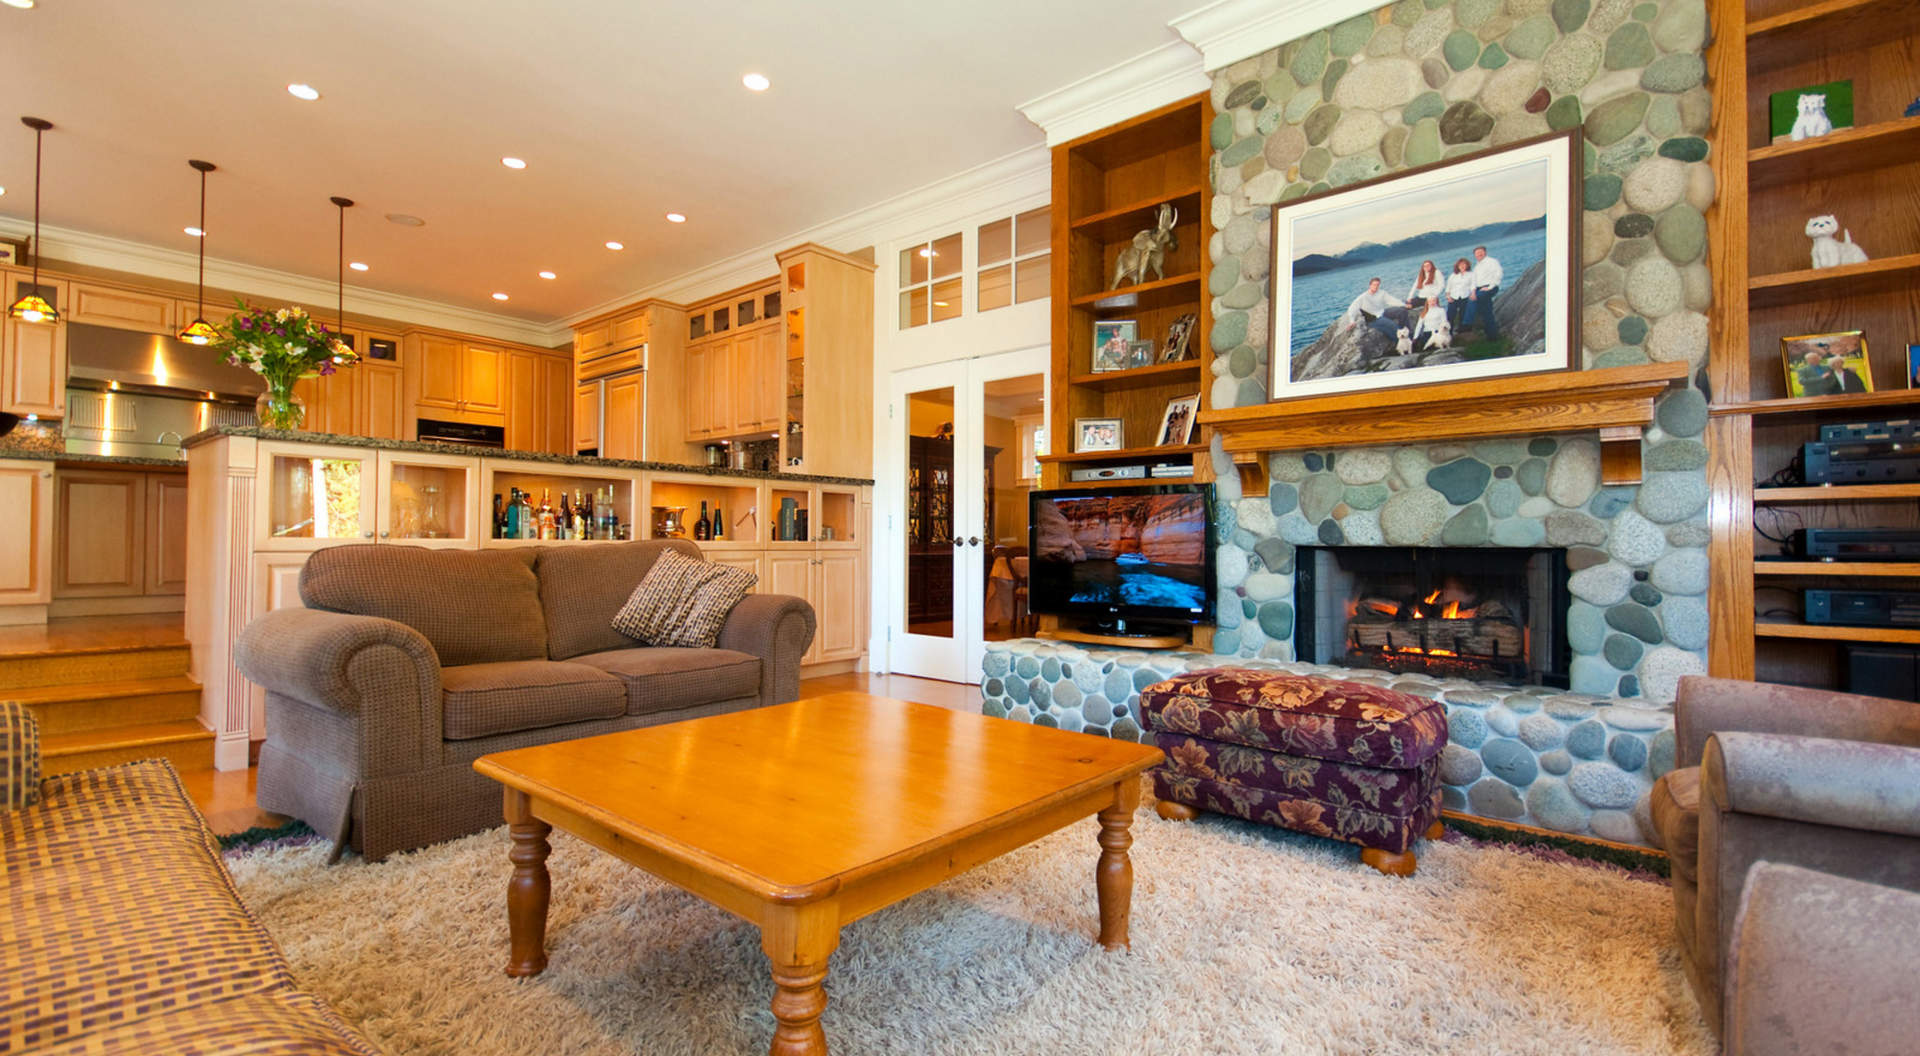 Family Room with Fireplace and Media Center